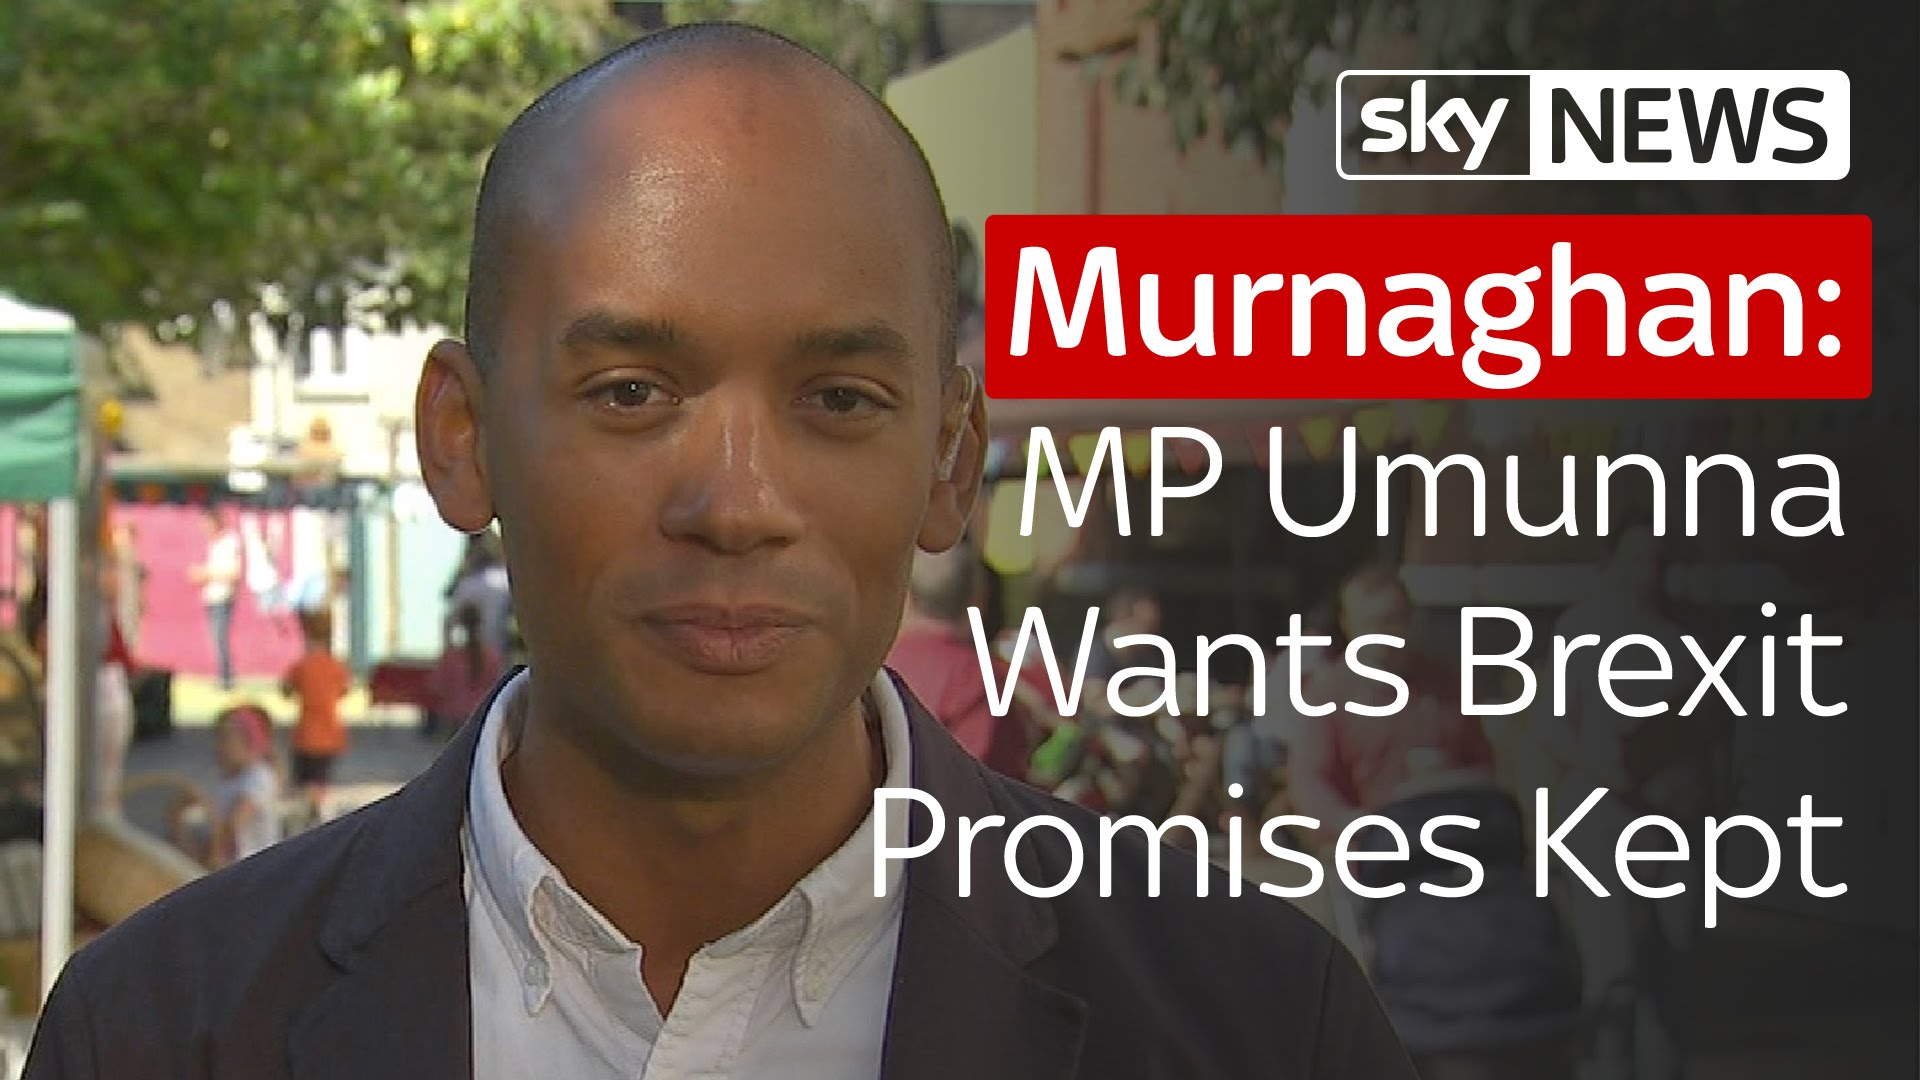 Labour MP Umunna Wants Brexit Promises Kept 9